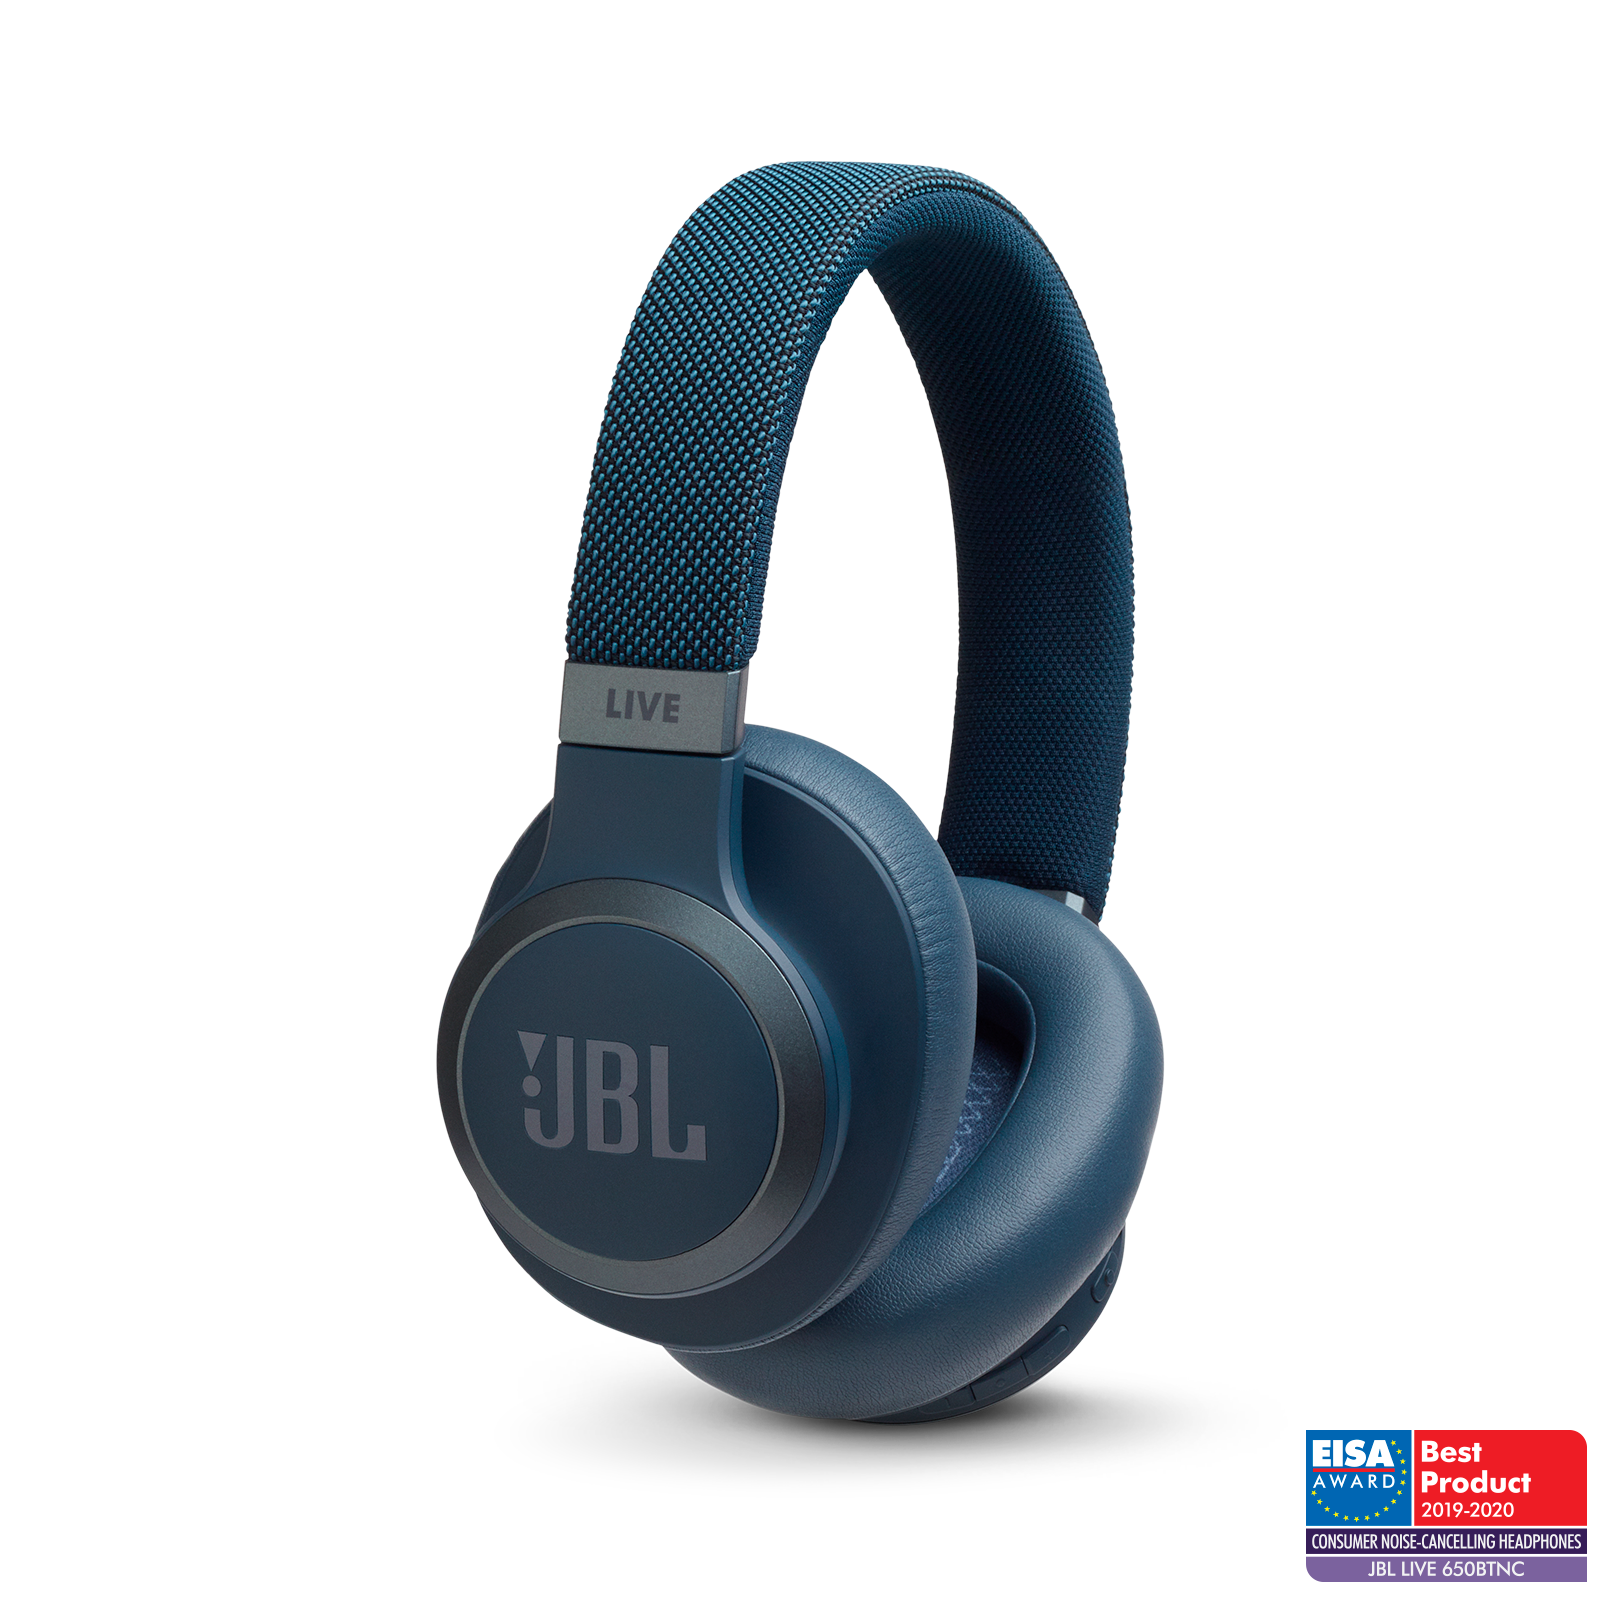 JBL LIVE 650BTNC - Blue - Wireless Over-Ear Noise-Cancelling Headphones - Hero